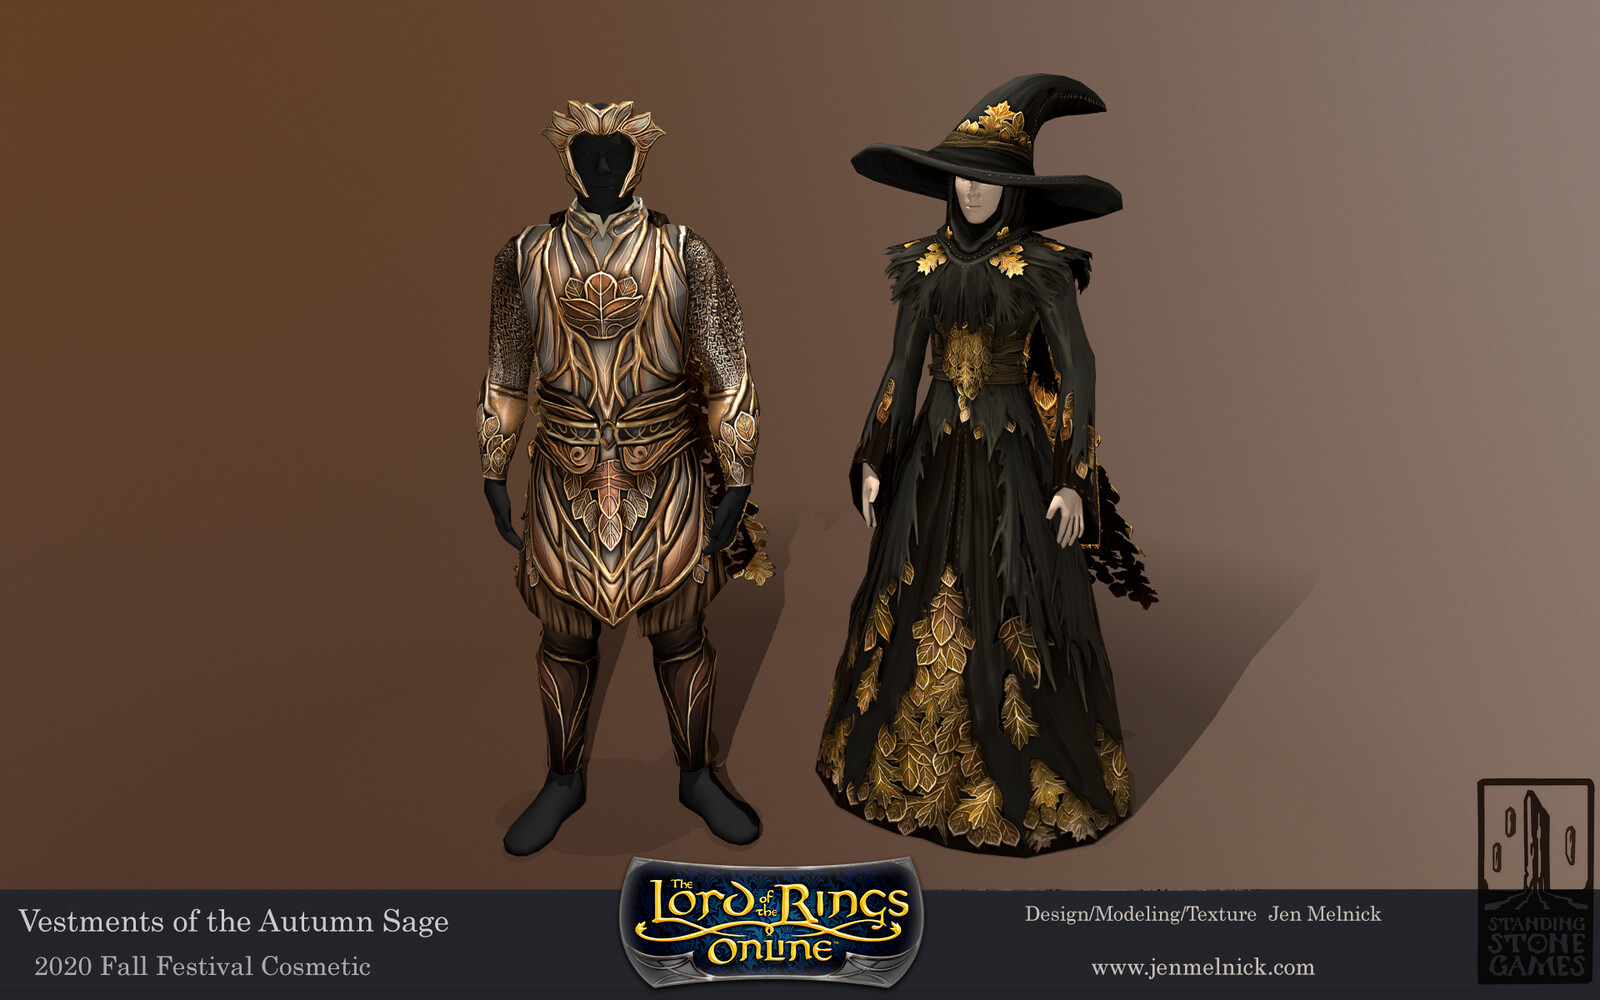 Lord of the Rings Online Vestments of the Autumn Sage Vestments of the Leaf-Turner Fall Festival 2020